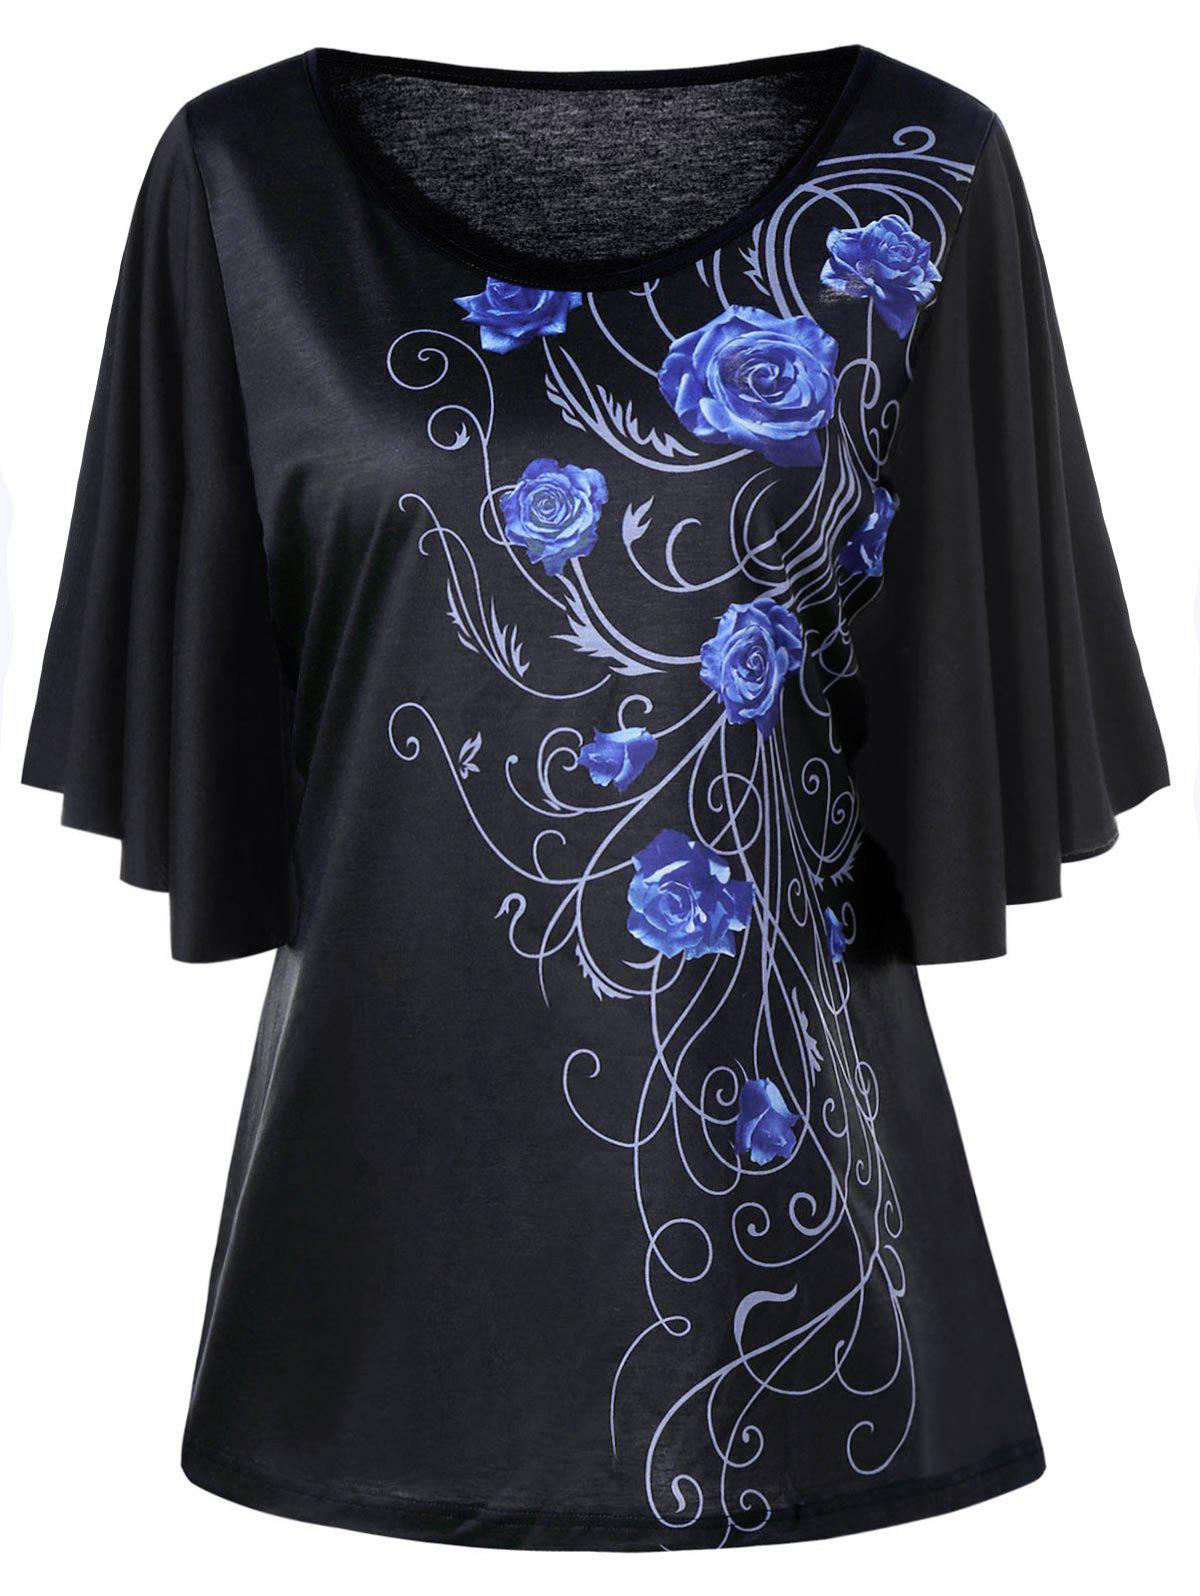 Plus Size Floral Drape Sleeve T-shirtWOMEN<br><br>Size: 4XL; Color: BLUE; Material: Polyester,Spandex; Shirt Length: Long; Sleeve Length: Short; Collar: Round Neck; Style: Casual; Season: Fall,Spring,Summer; Pattern Type: Floral; Weight: 0.2700kg; Package Contents: 1 x T-shirt;